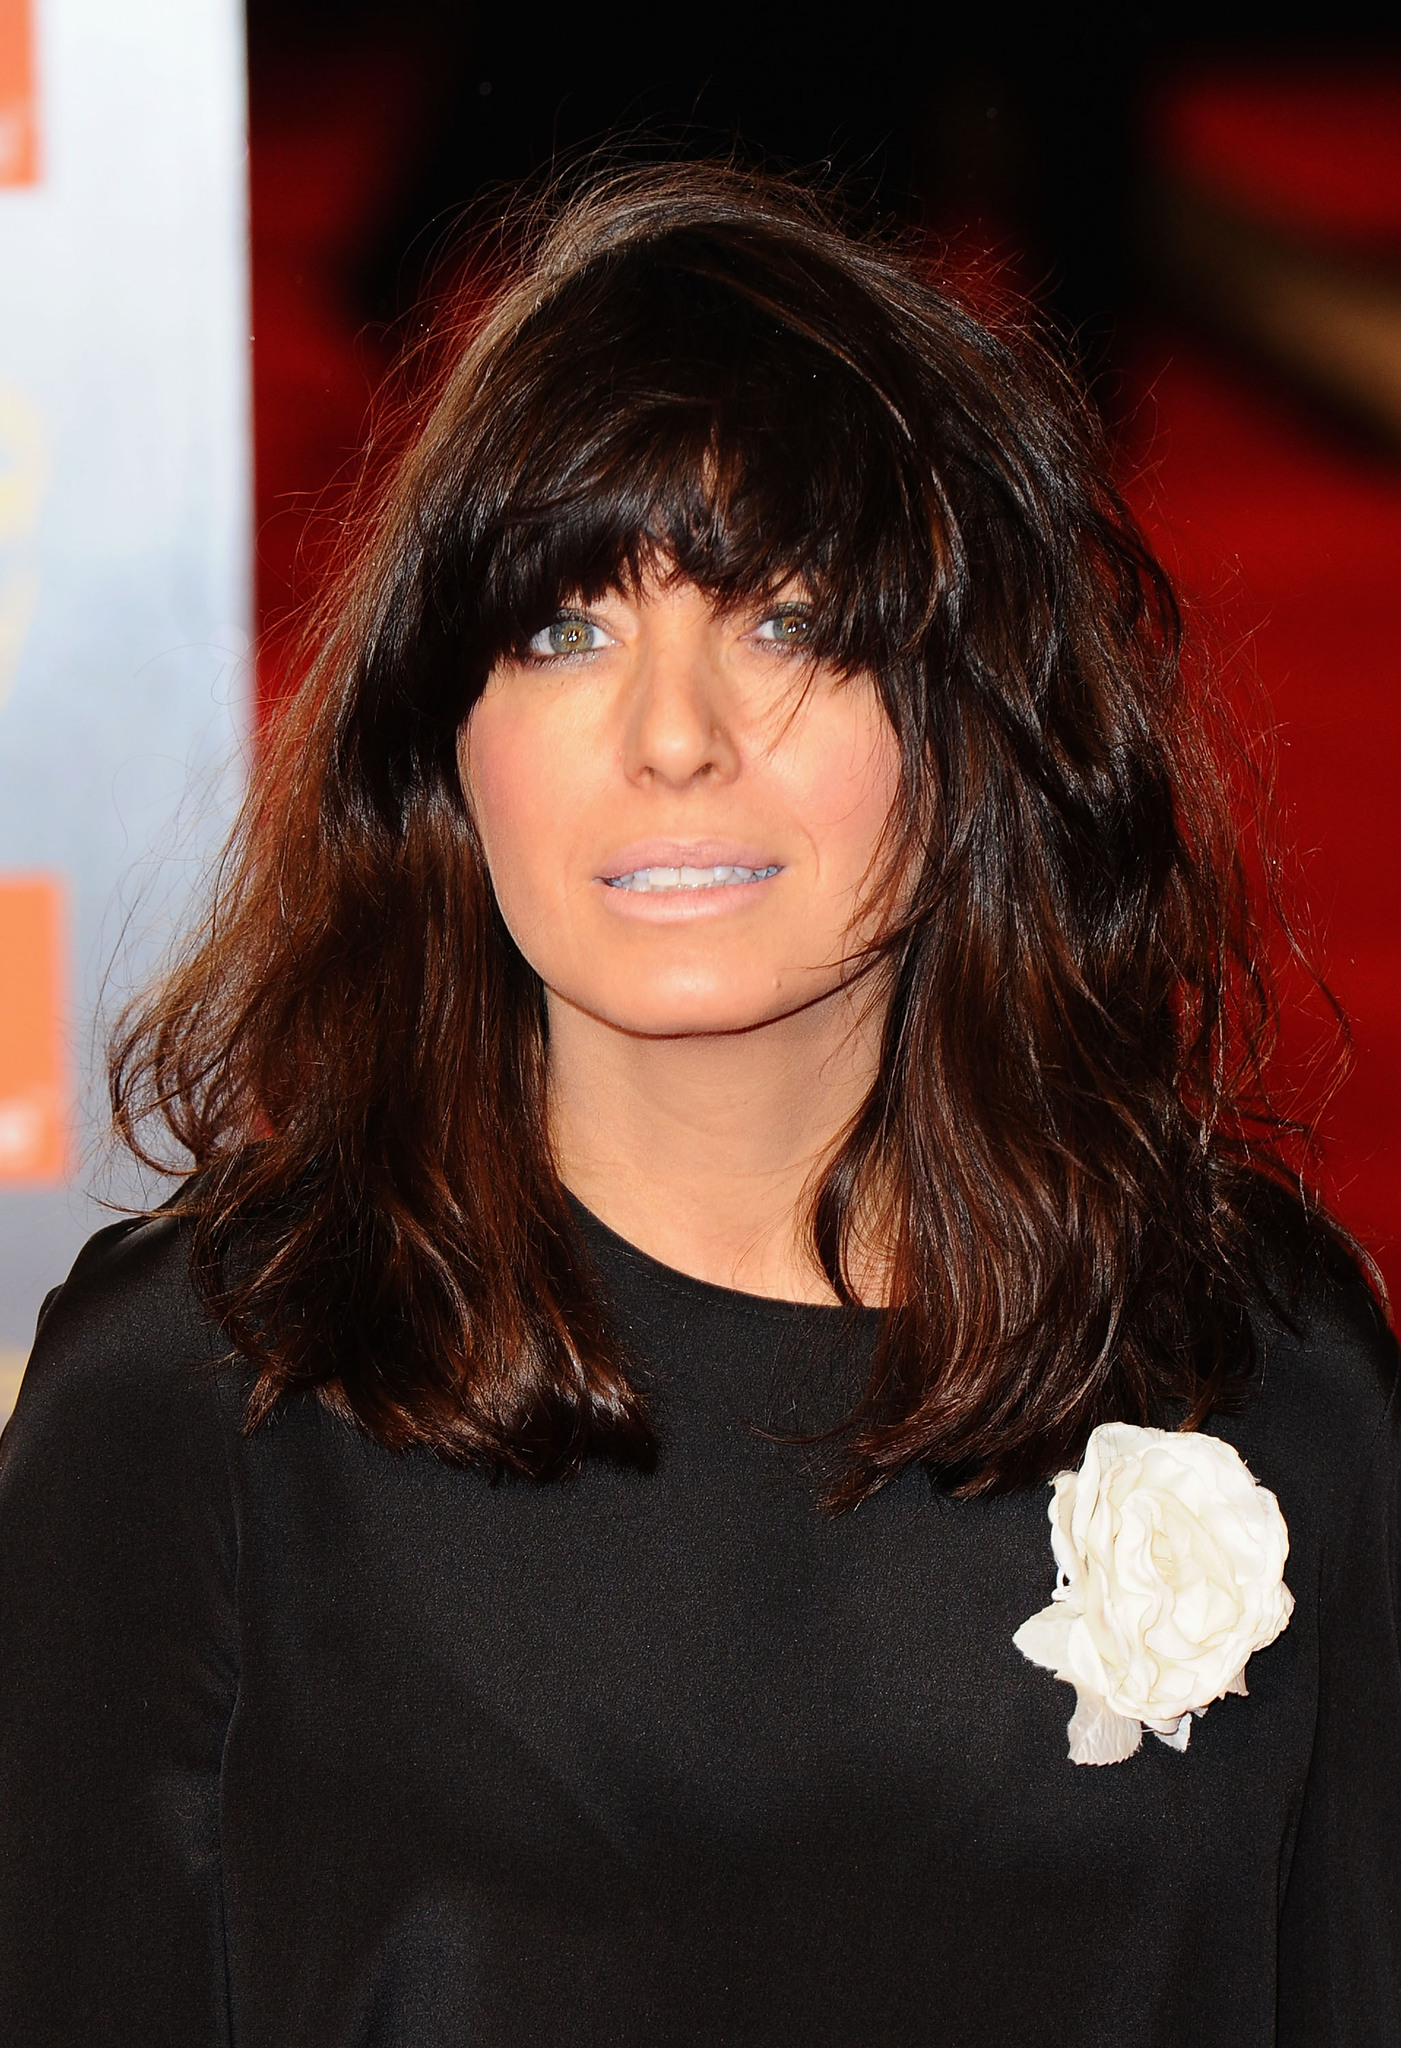 cleavage Claudia Winkleman naked photo 2017